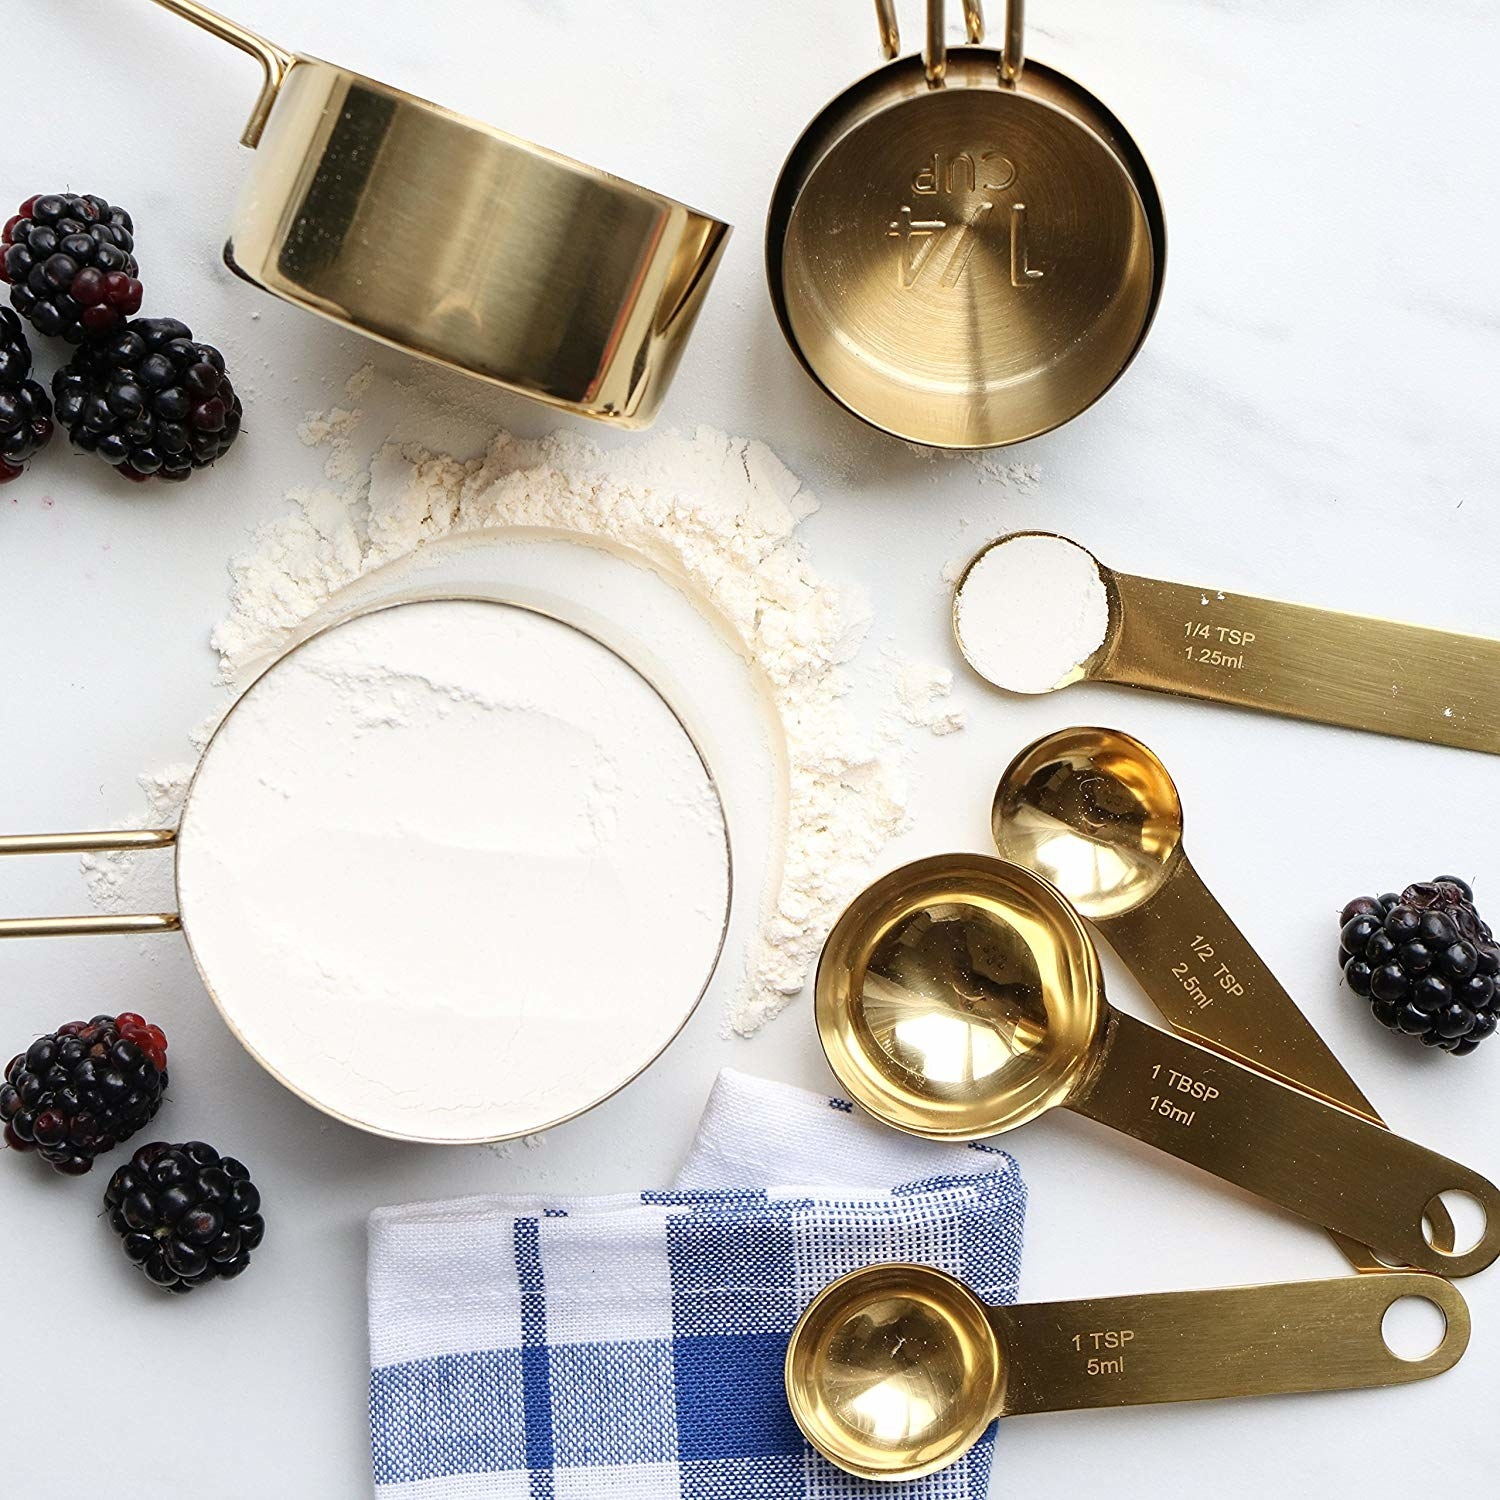 The measuring cups and spoons with baking ingredients